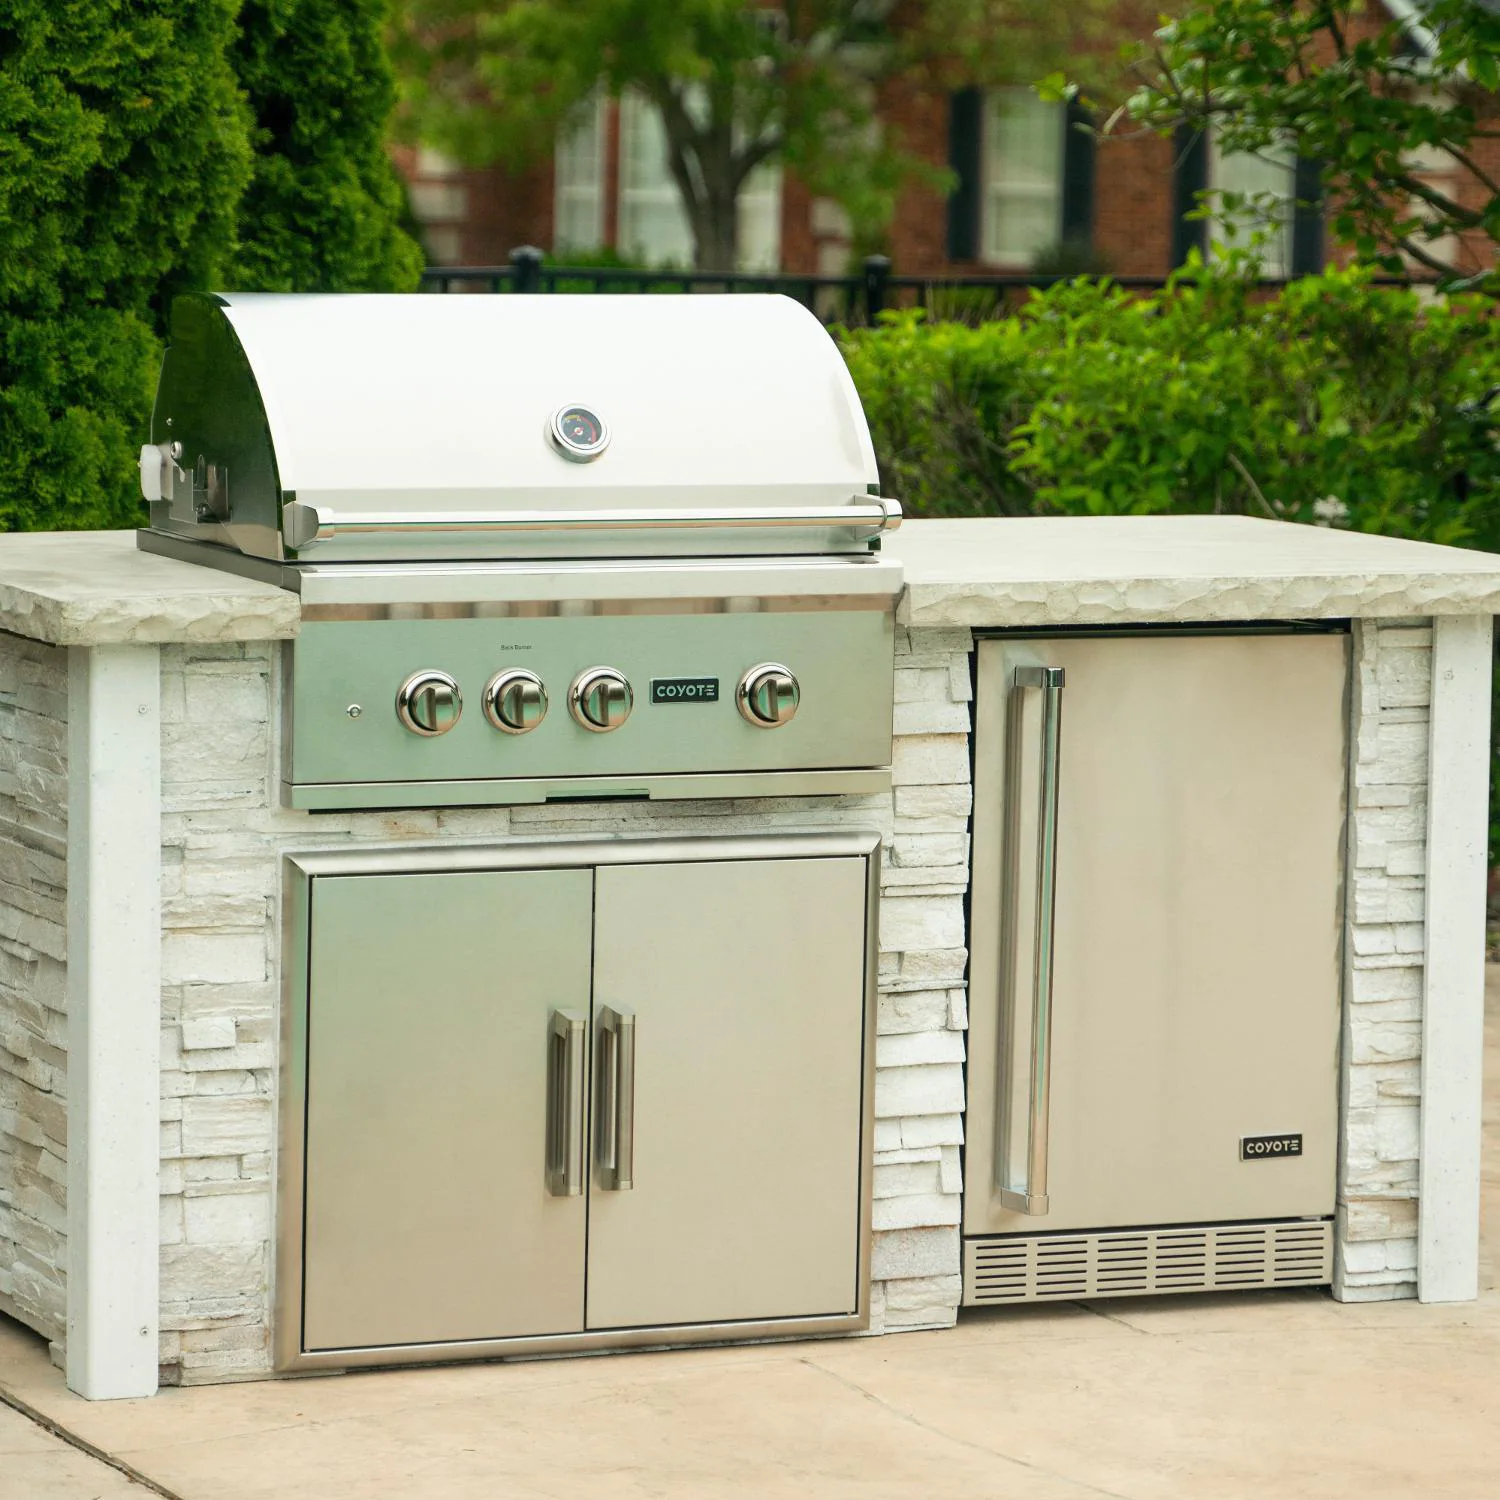 Coyote Ready-To-Assemble 6 Ft Outdoor Kitchen Island With 30-Inch S Series Propane Gas Grill - Stacked Stone/Modern White - RTAC-G6-P-SW-C2SL30LP